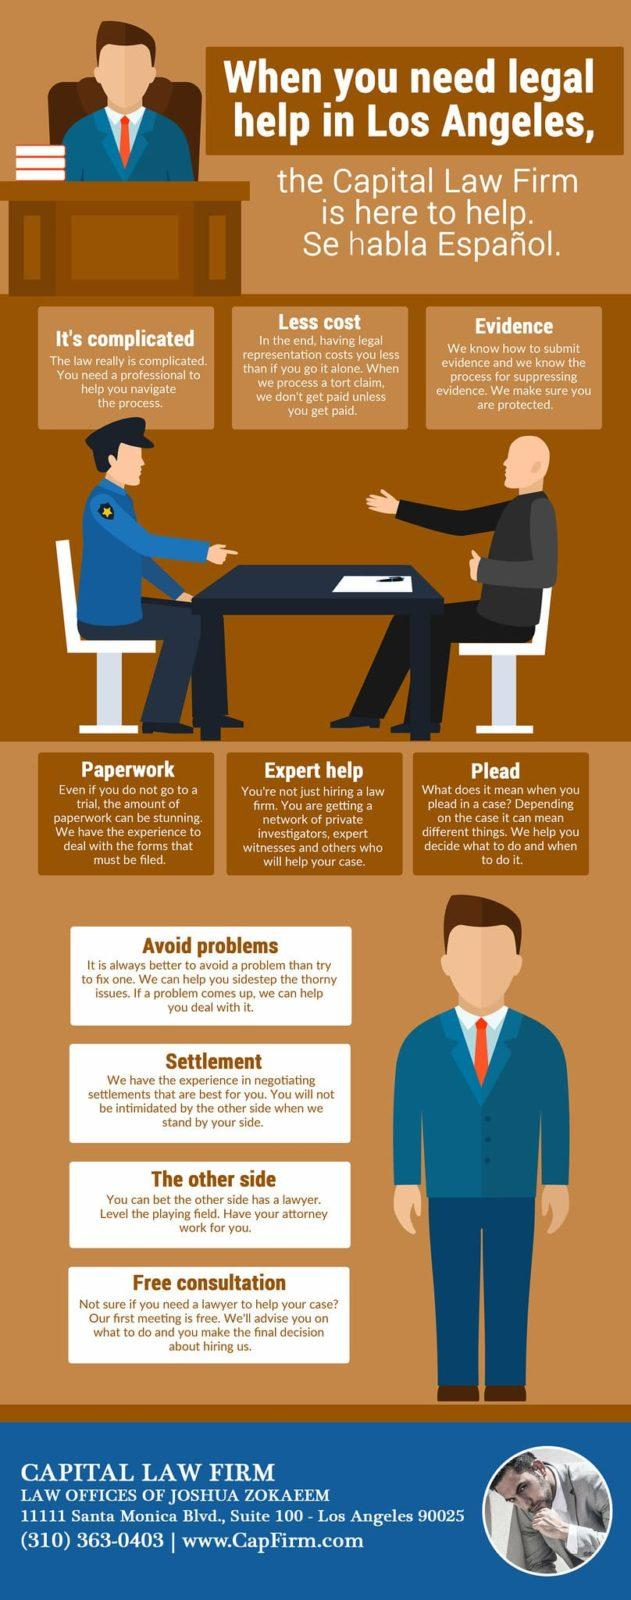 HOW TO CHOOSE THE BEST ATTORNEY